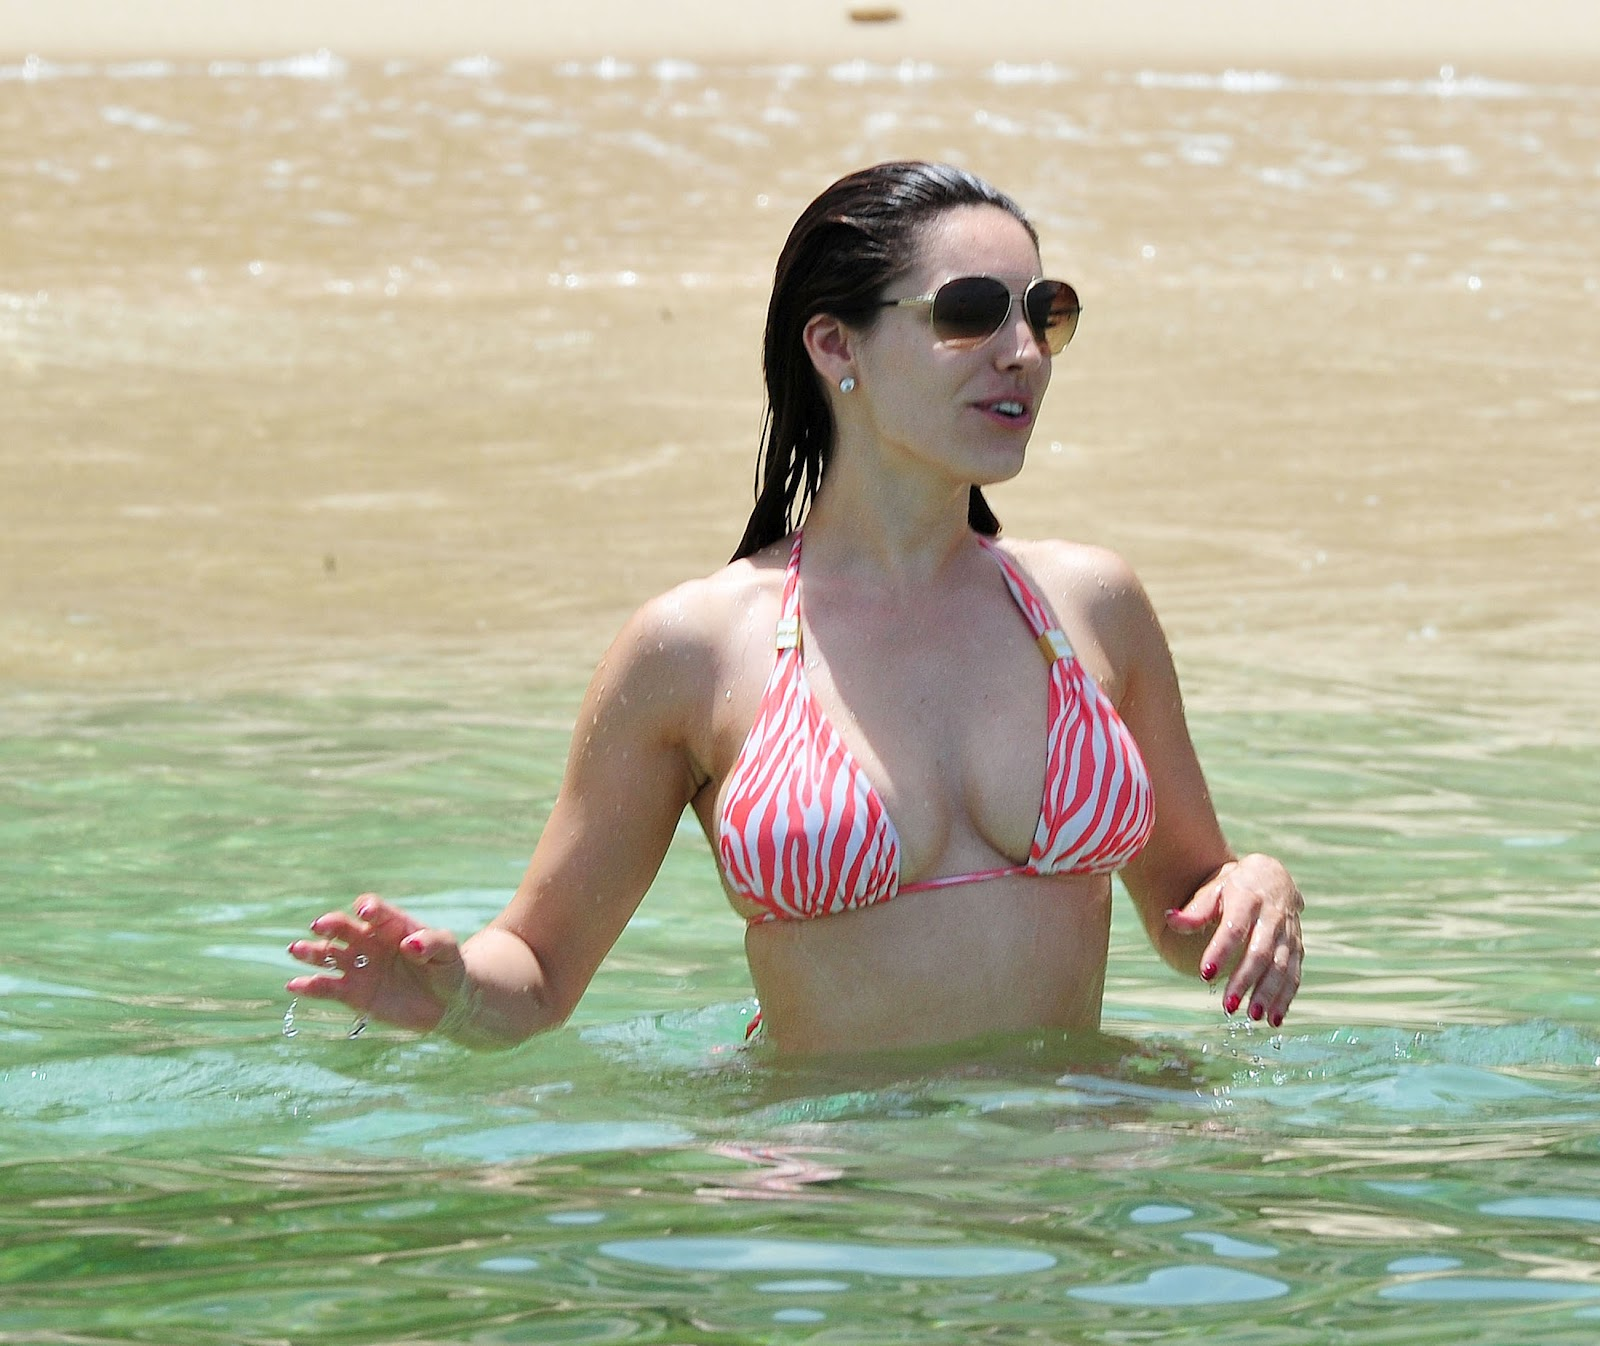 Kelly Brook in Patterned Bikini on the beach in Thailand Pic 4 of 35